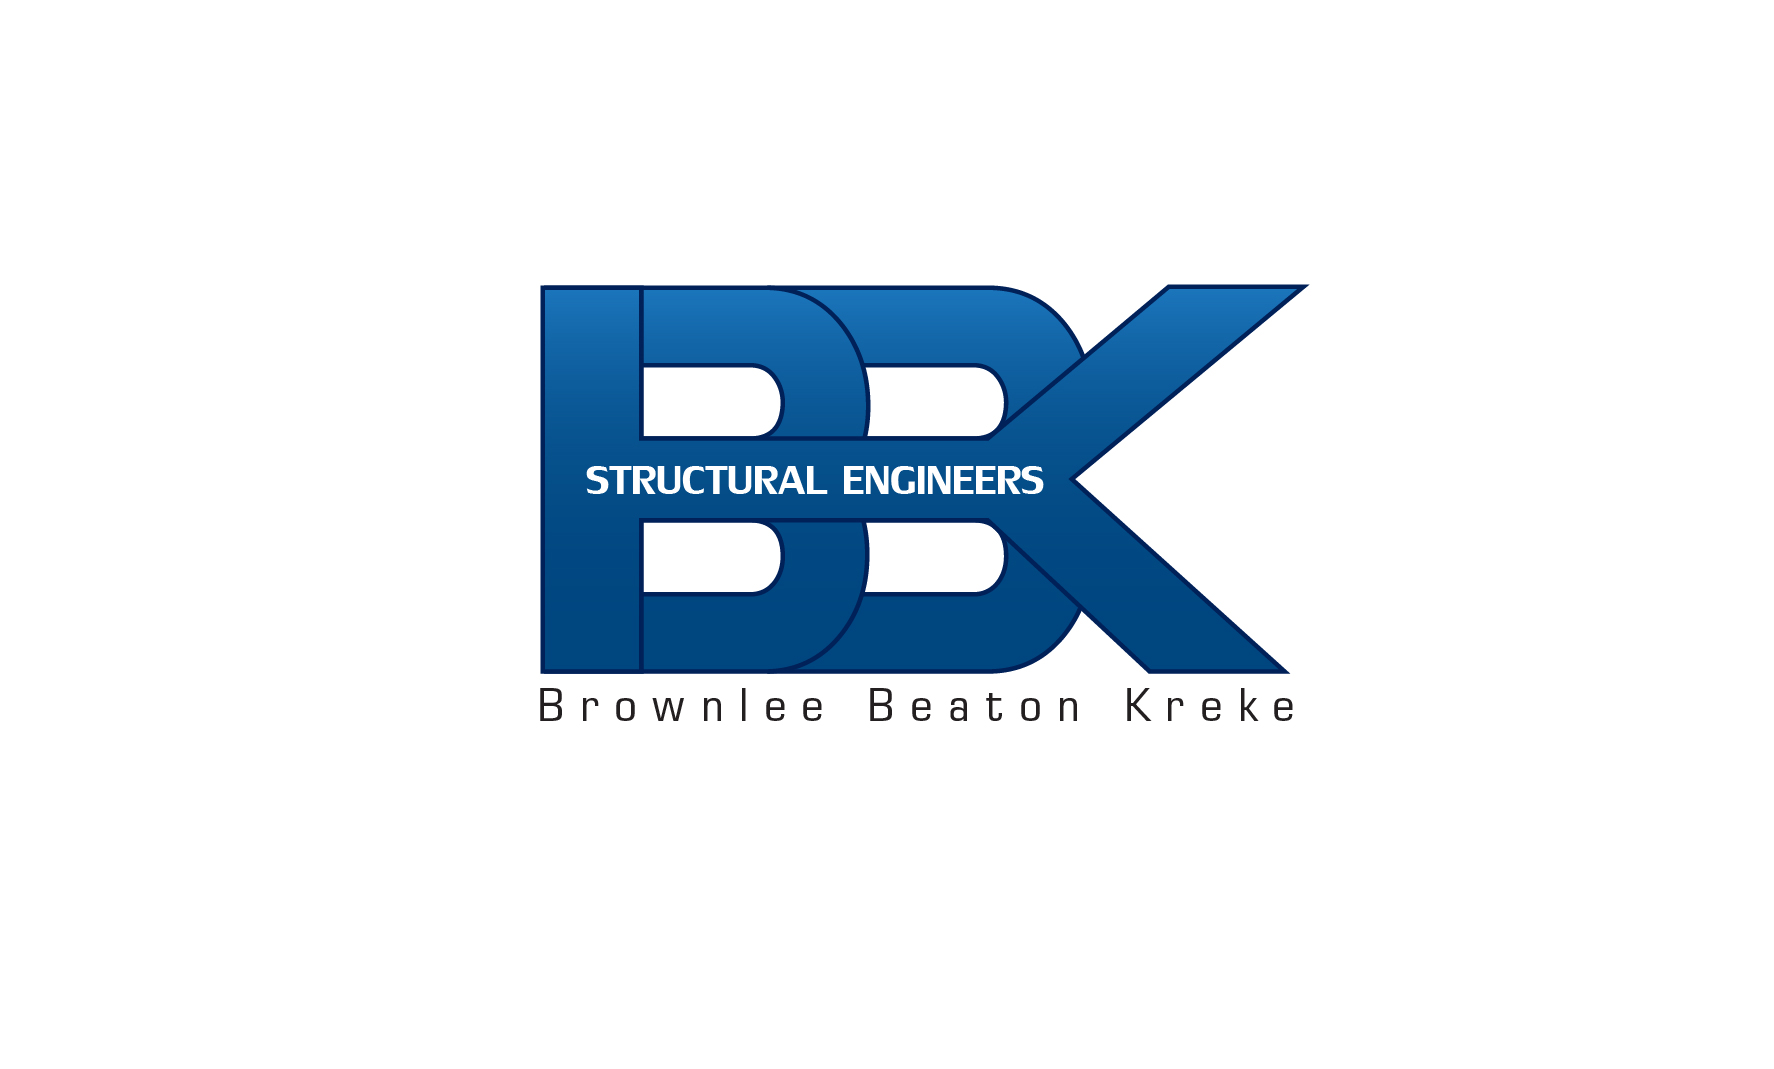 Logo Design by 3draw - Entry No. 55 in the Logo Design Contest Logo Design Needed for Exciting New Company BBK Consulting Engineers.